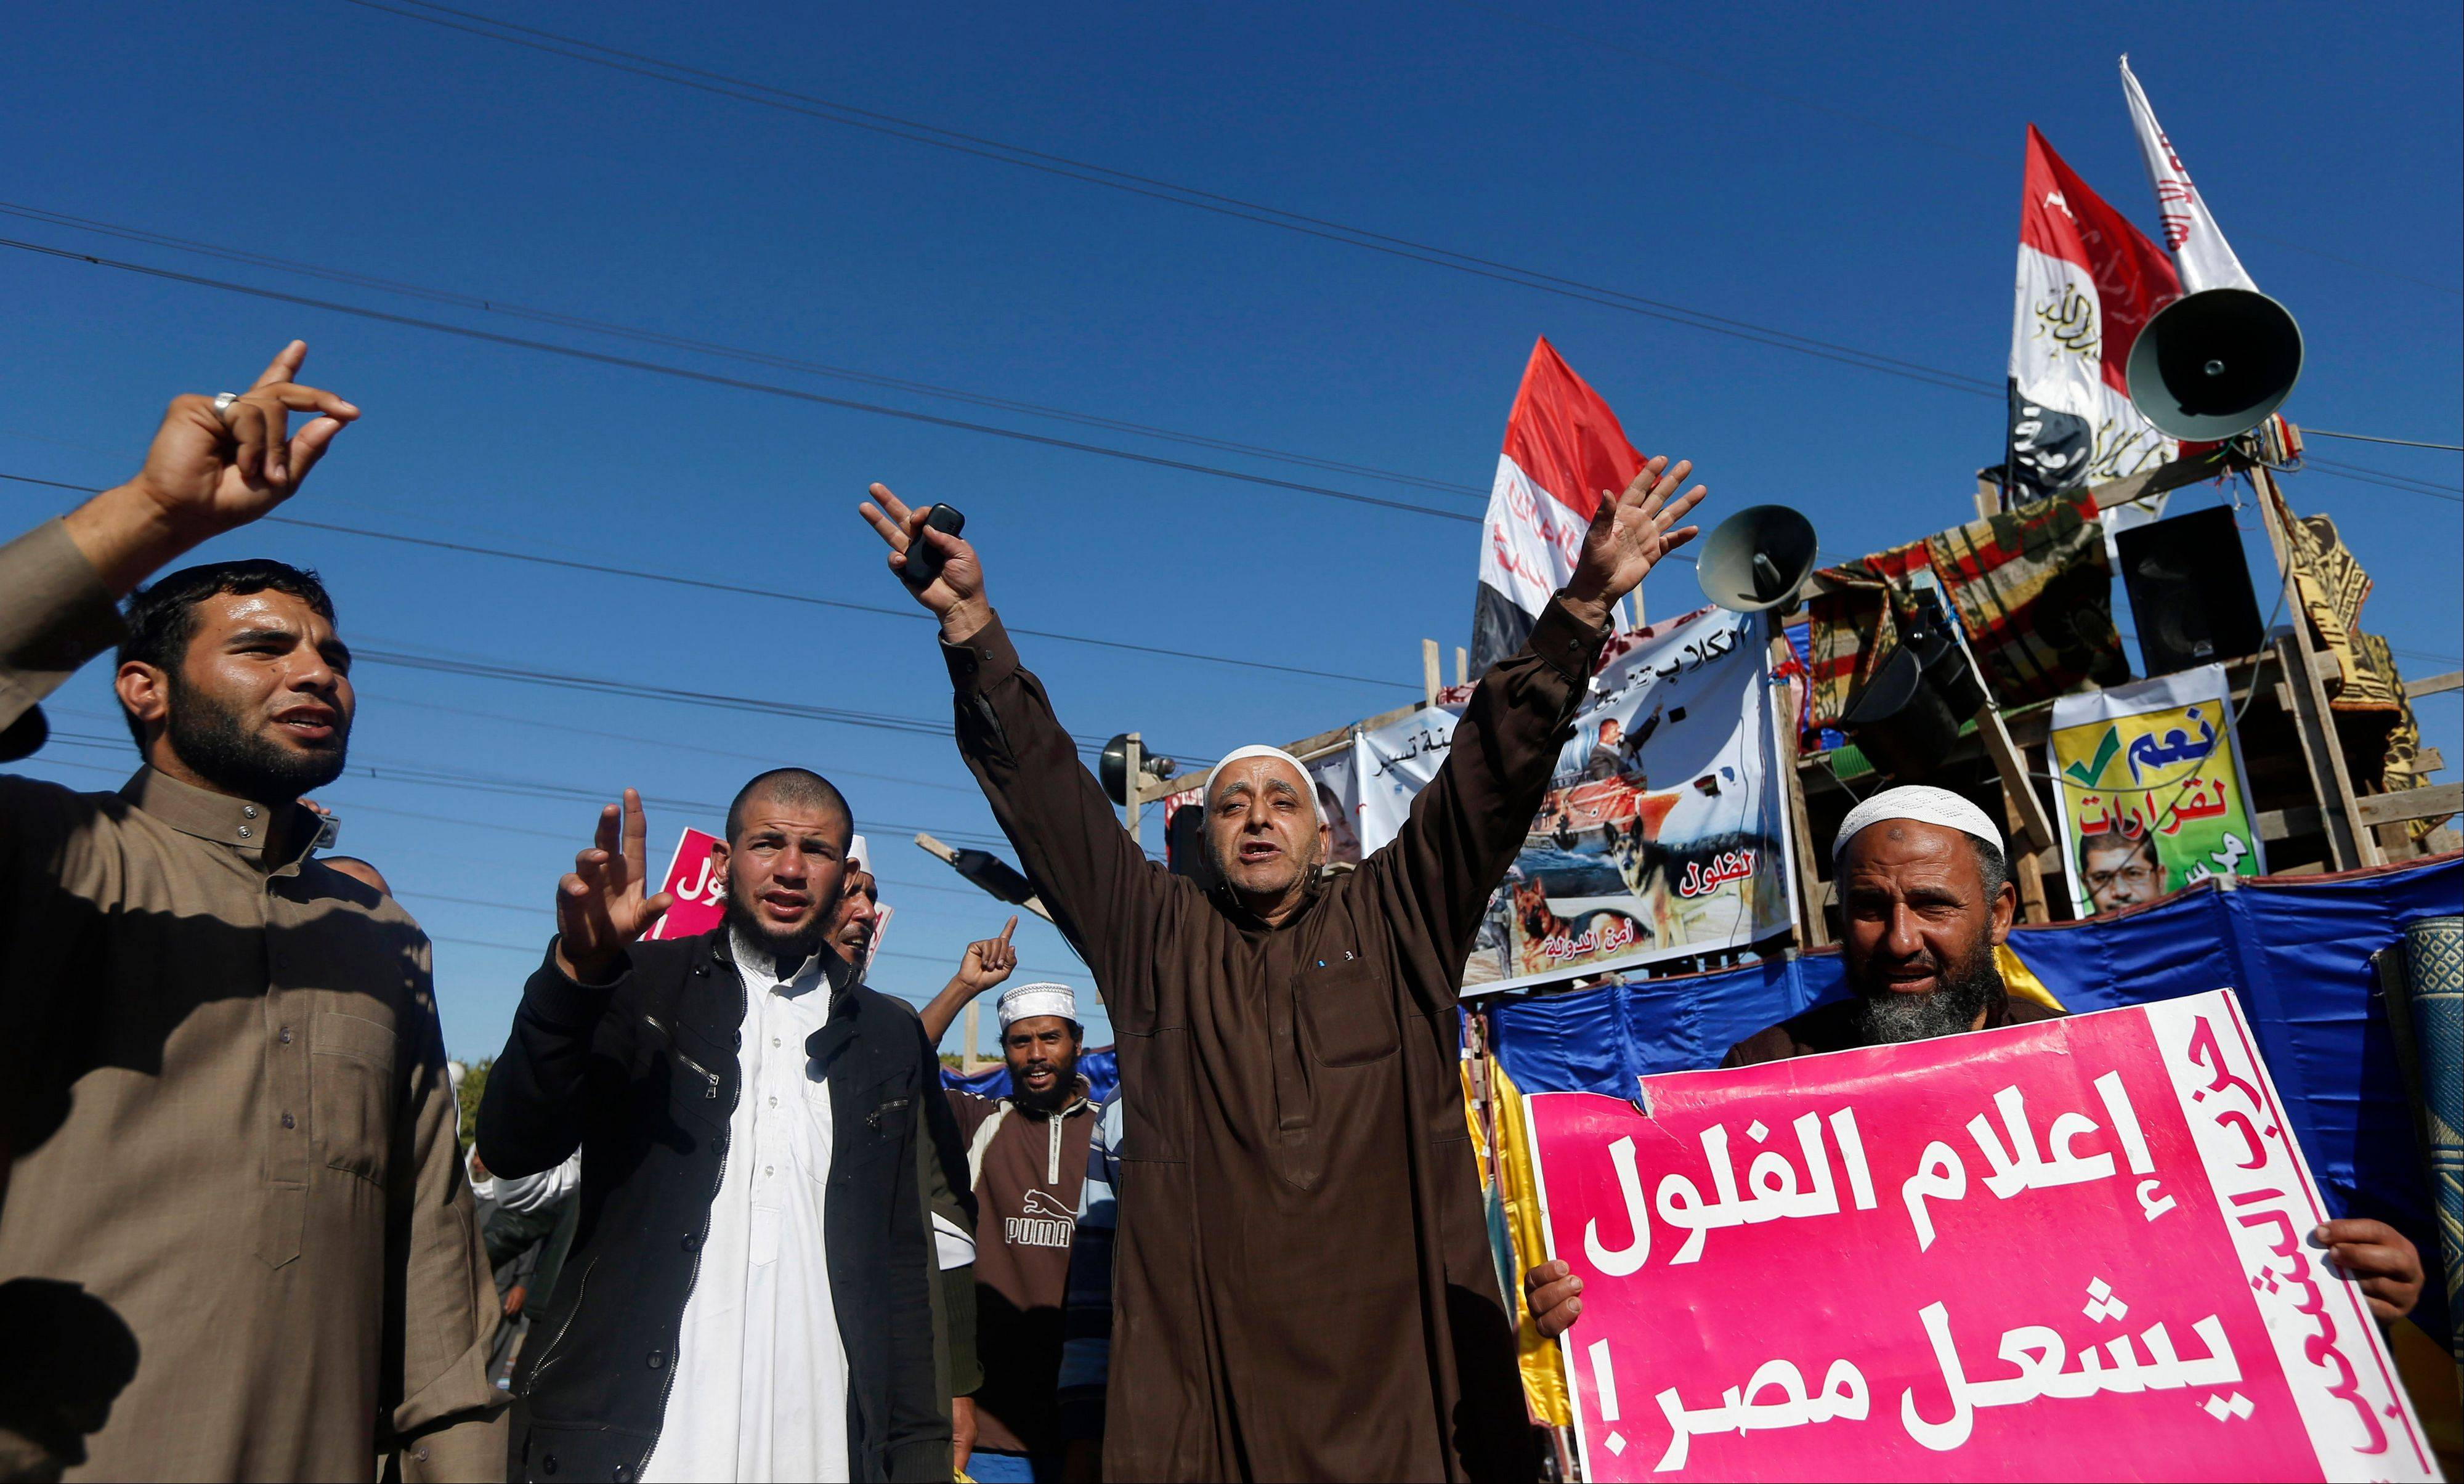 Islamist protesters supporting Egyptian President Mohammed Morsi chant slogans in front of the Media City complex in Giza, Egypt, W